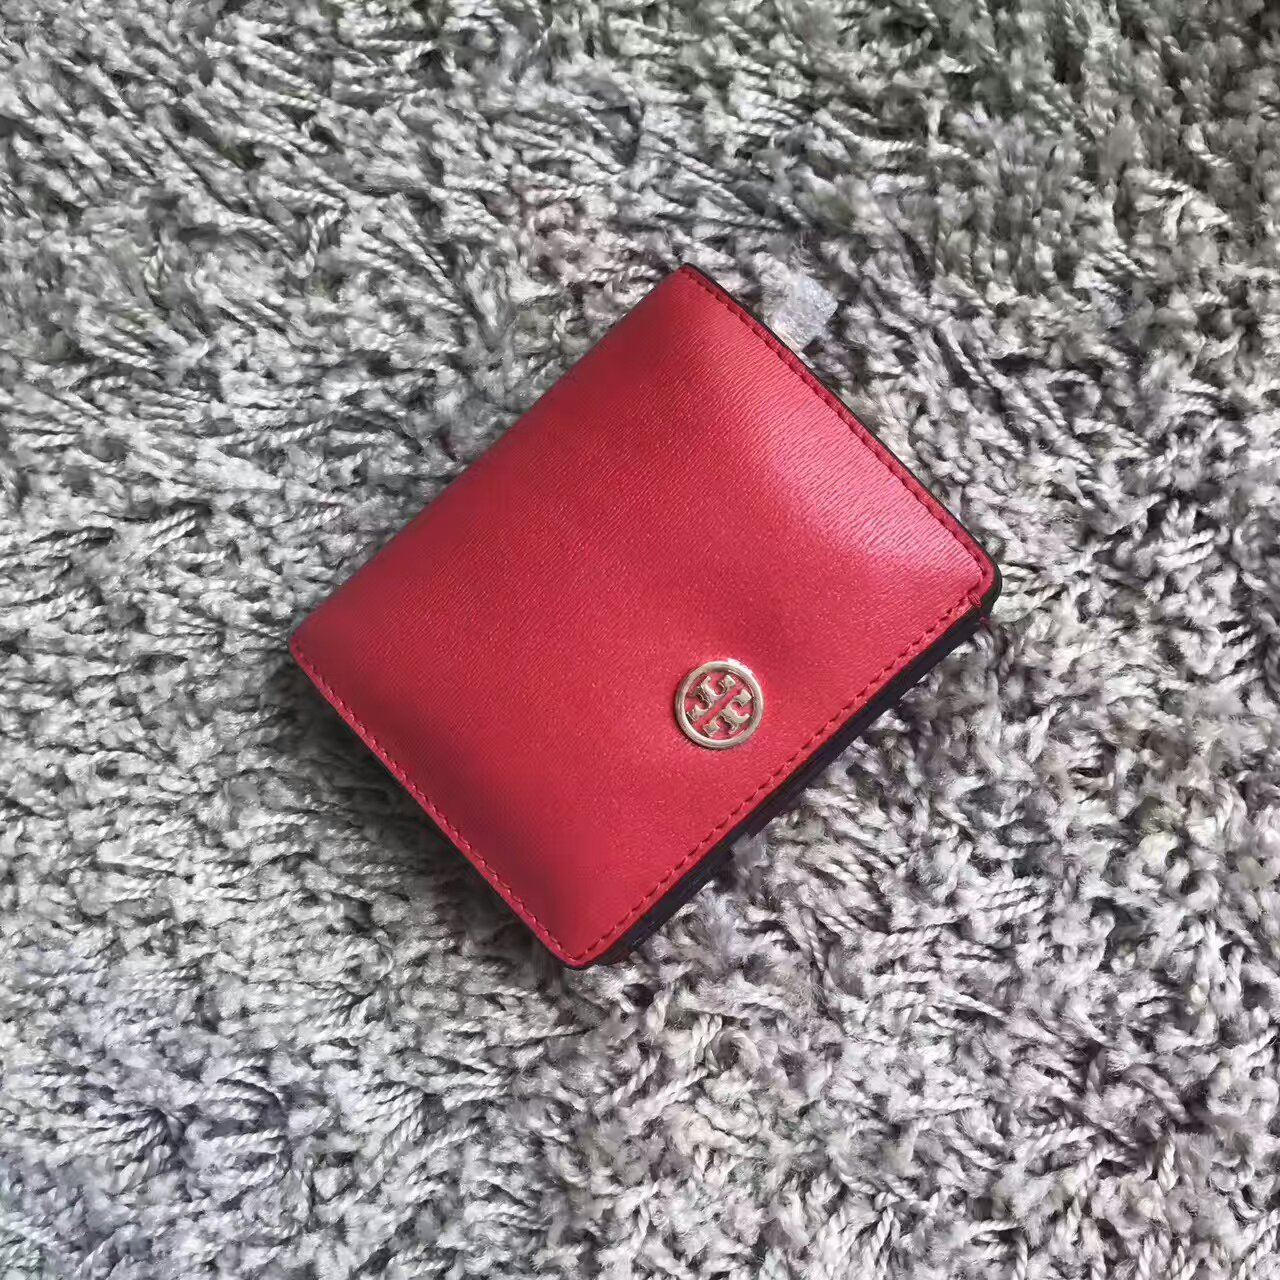 ae7f104af0bc Tory Burch Parker Foldable Mini Wallet and 50 similar items.  Mmexport1499417041492. Mmexport1499417041492